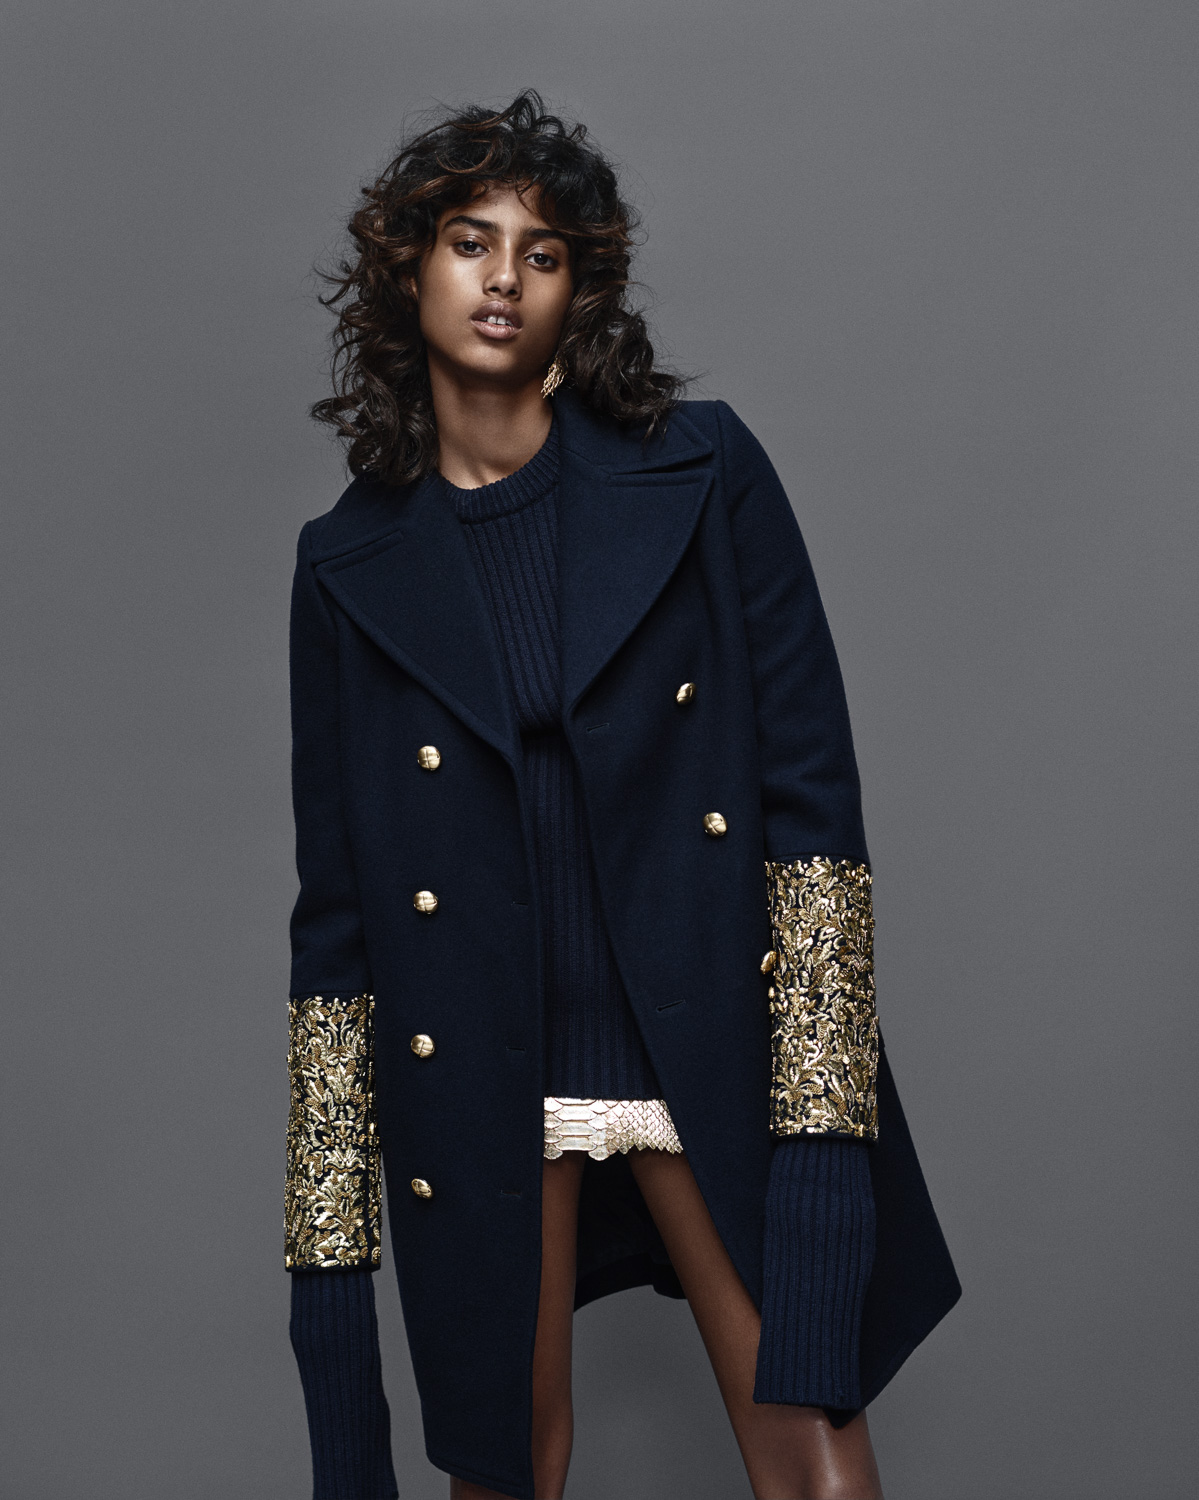 Imaan Hammam for VogueNL by Marc de Groot-19